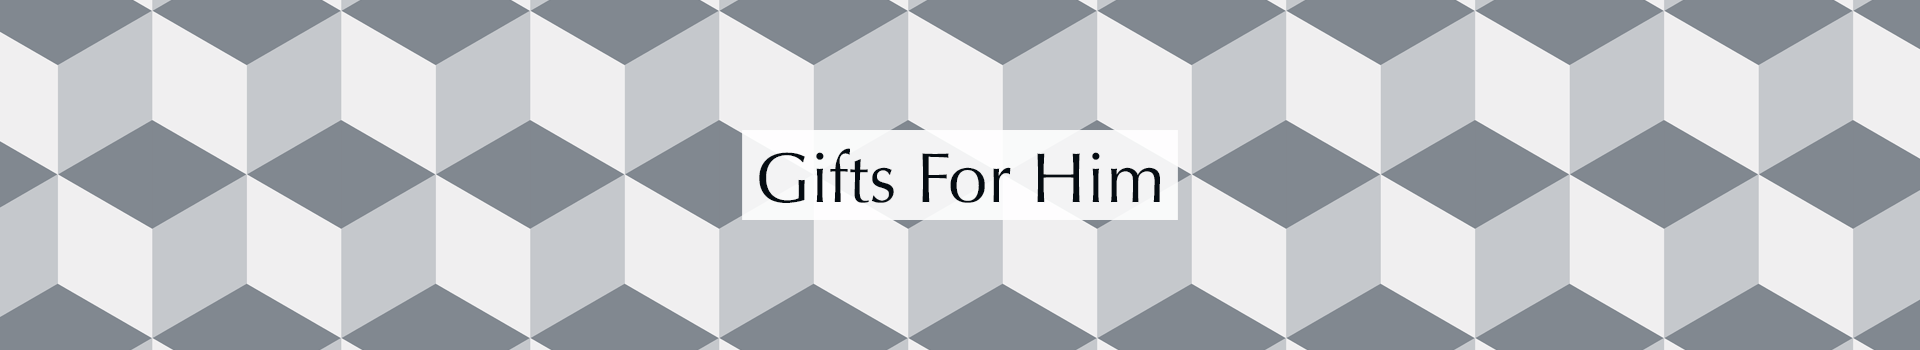 gifts-for-him-copy.png